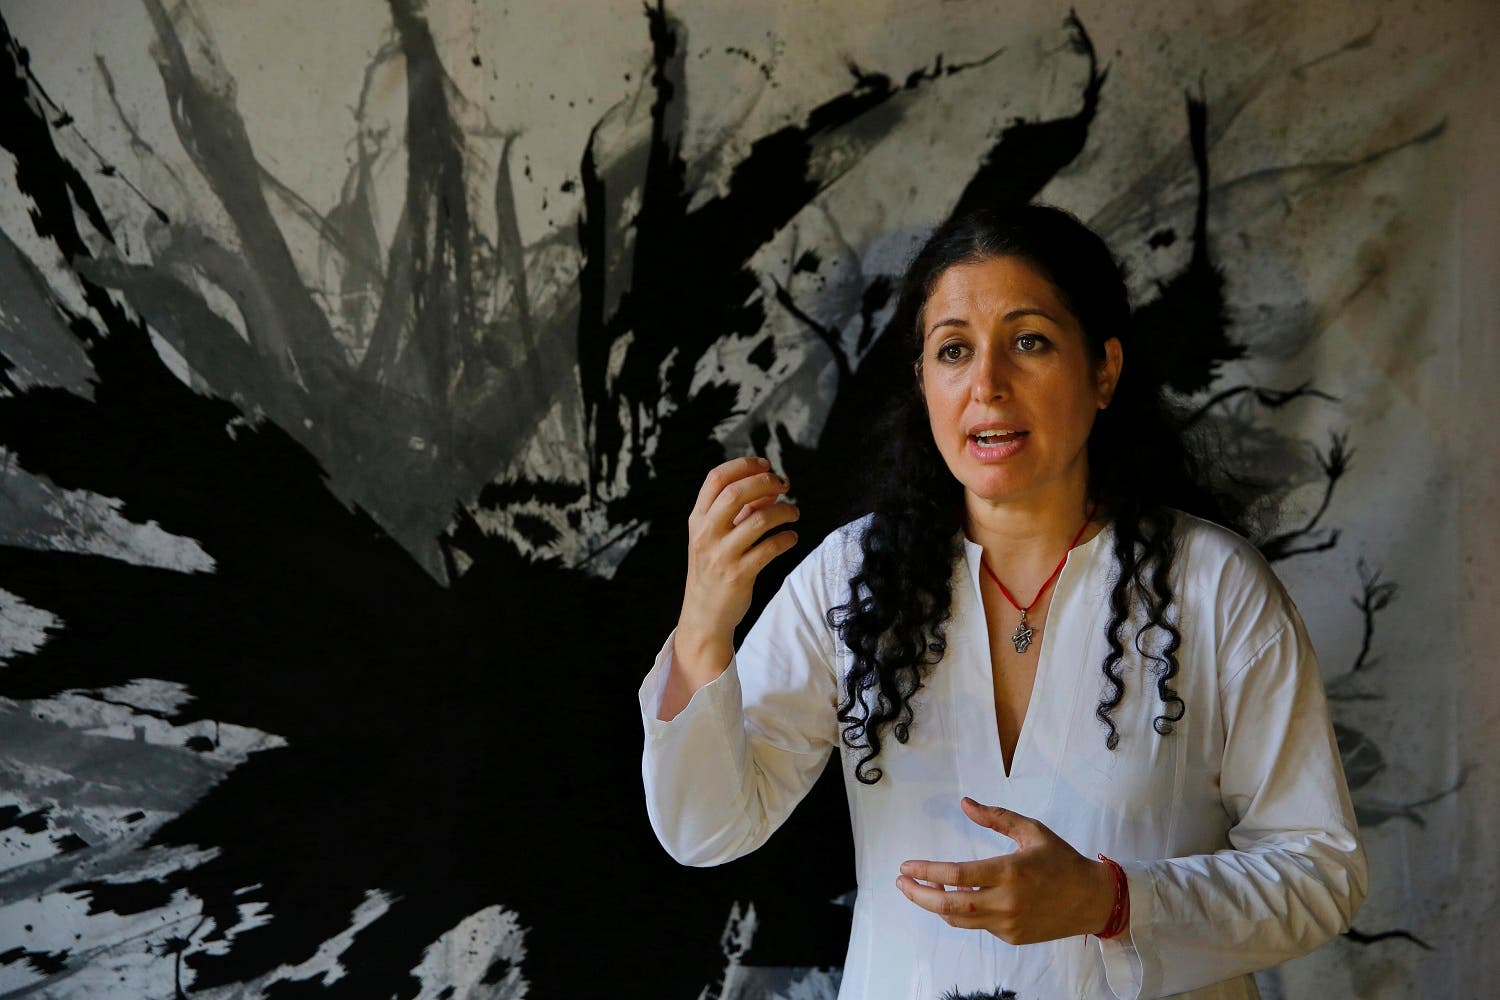 Lebanese artist Zena El Khalil speaks during an interview with The Associated Press, in front of one of her paintings in Beit Beirut, in Beirut, Lebanon. (AP)